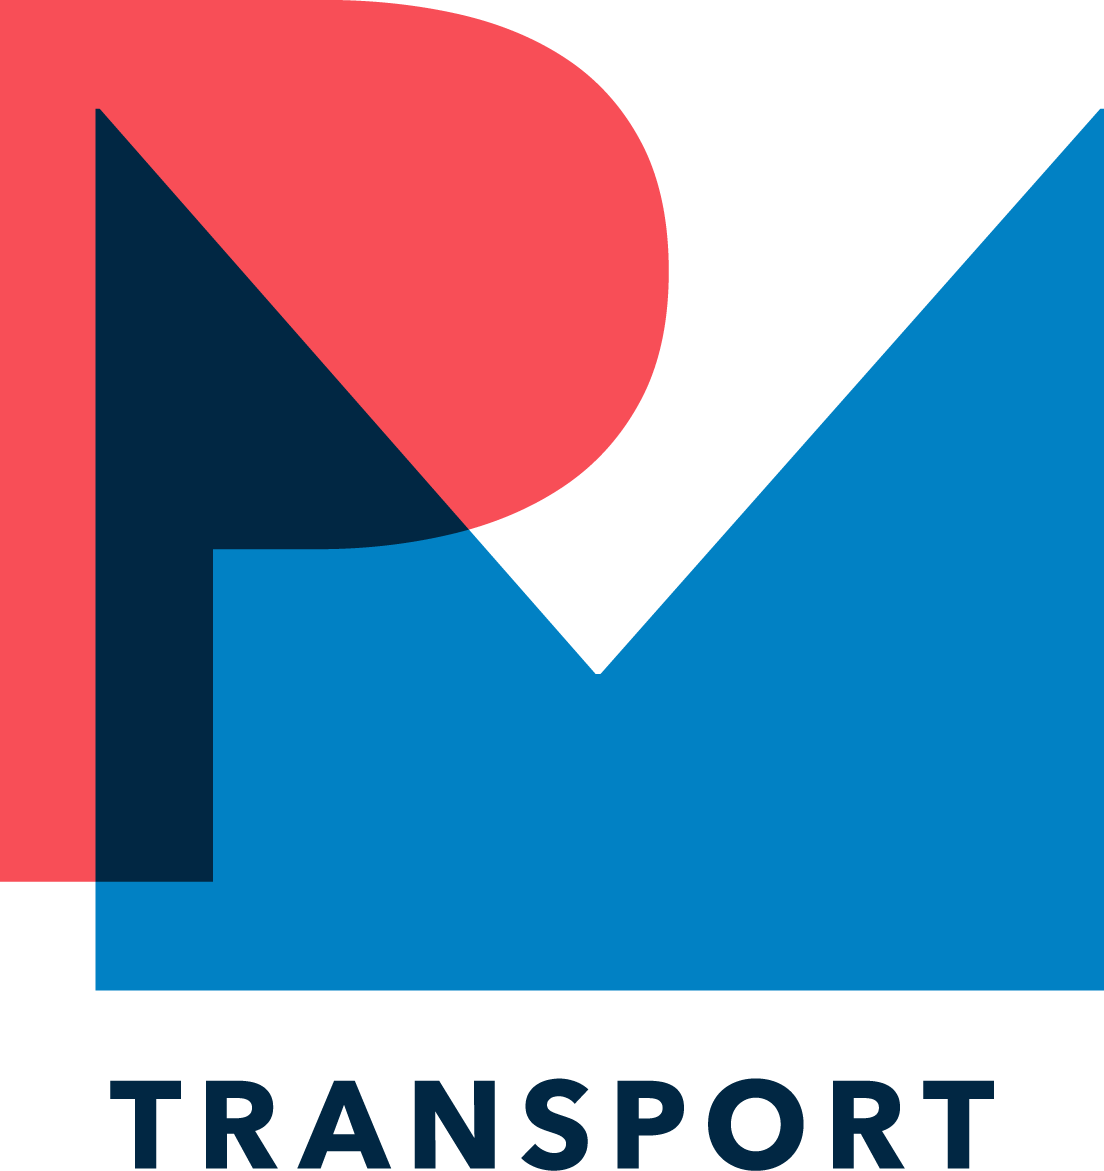 PM Transport